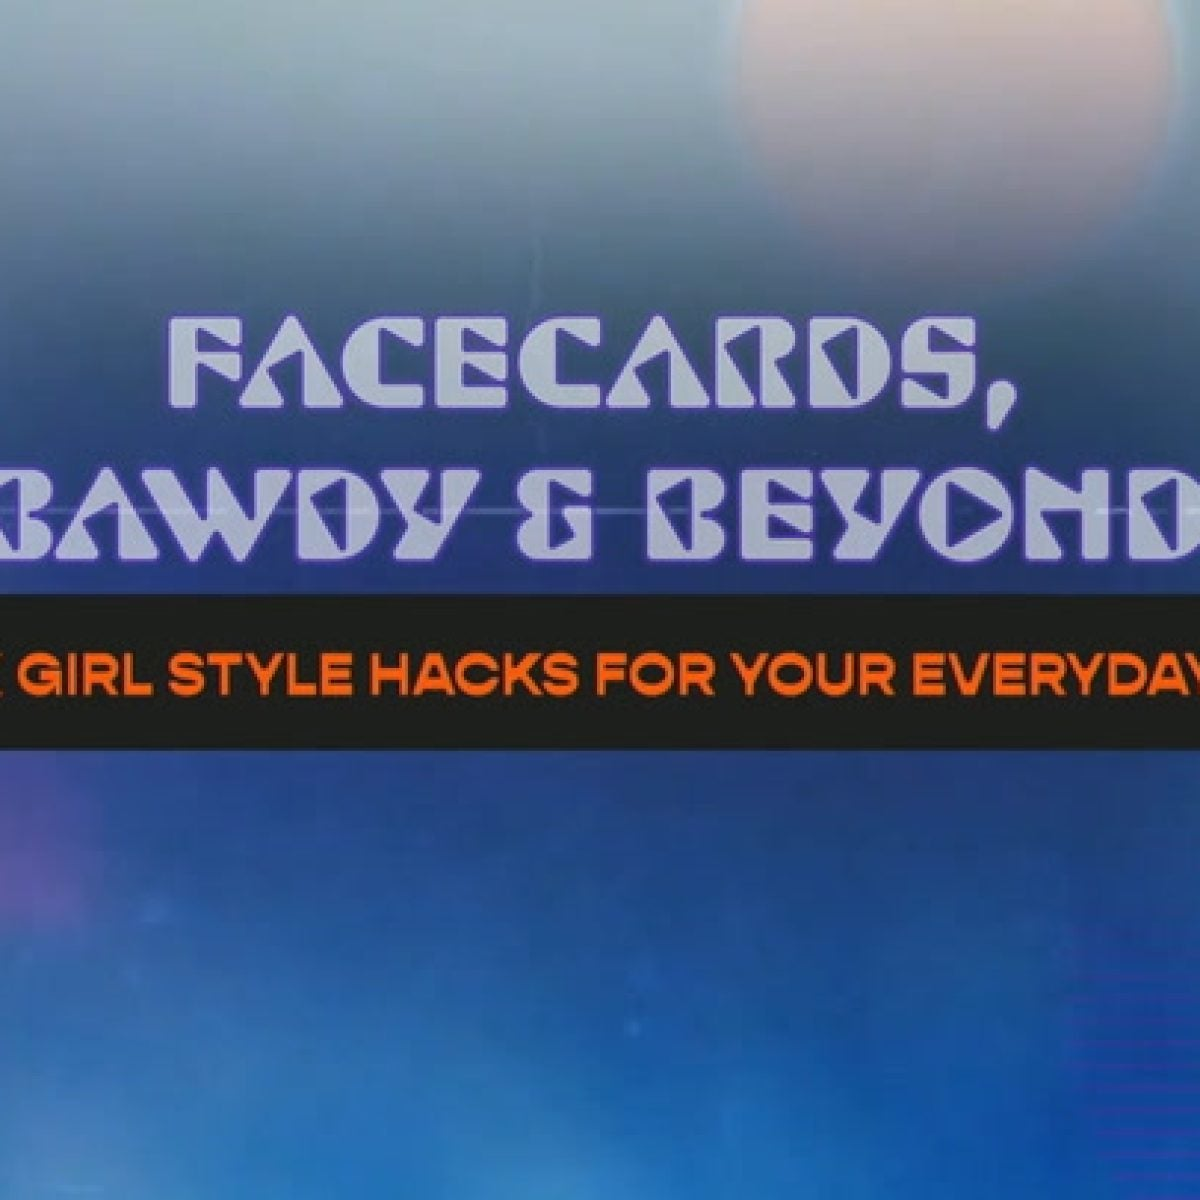 Facecards, Bawdy & Beyond: Black Girl Style Hacks For Your Everyday Slay